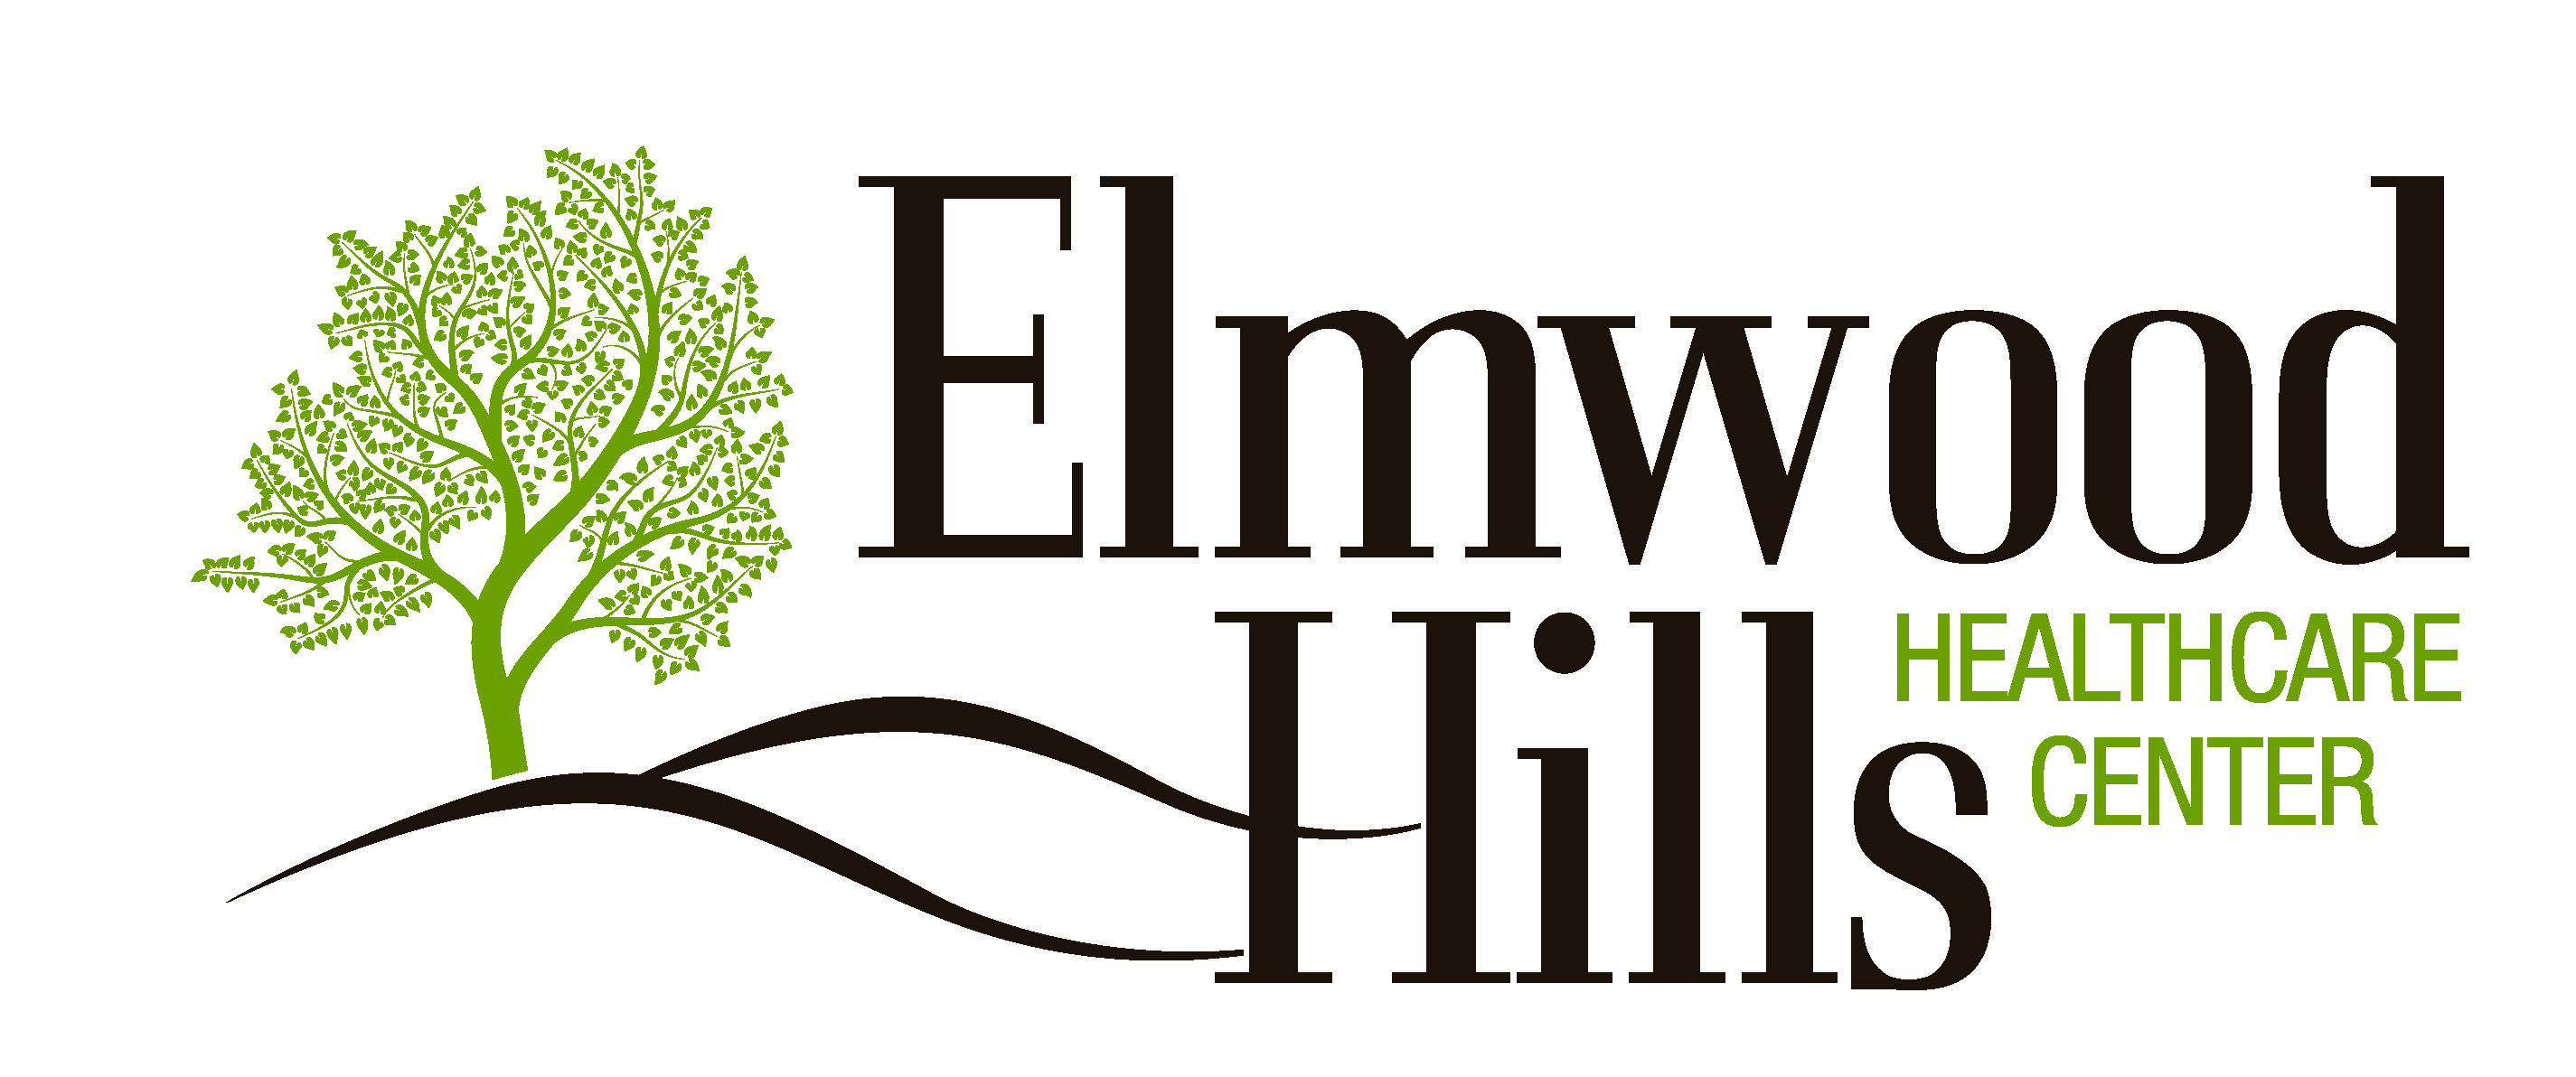 Elmwood Hills Healthcare Center – CAMDEN COUNTY\'S PREMIER Center ...